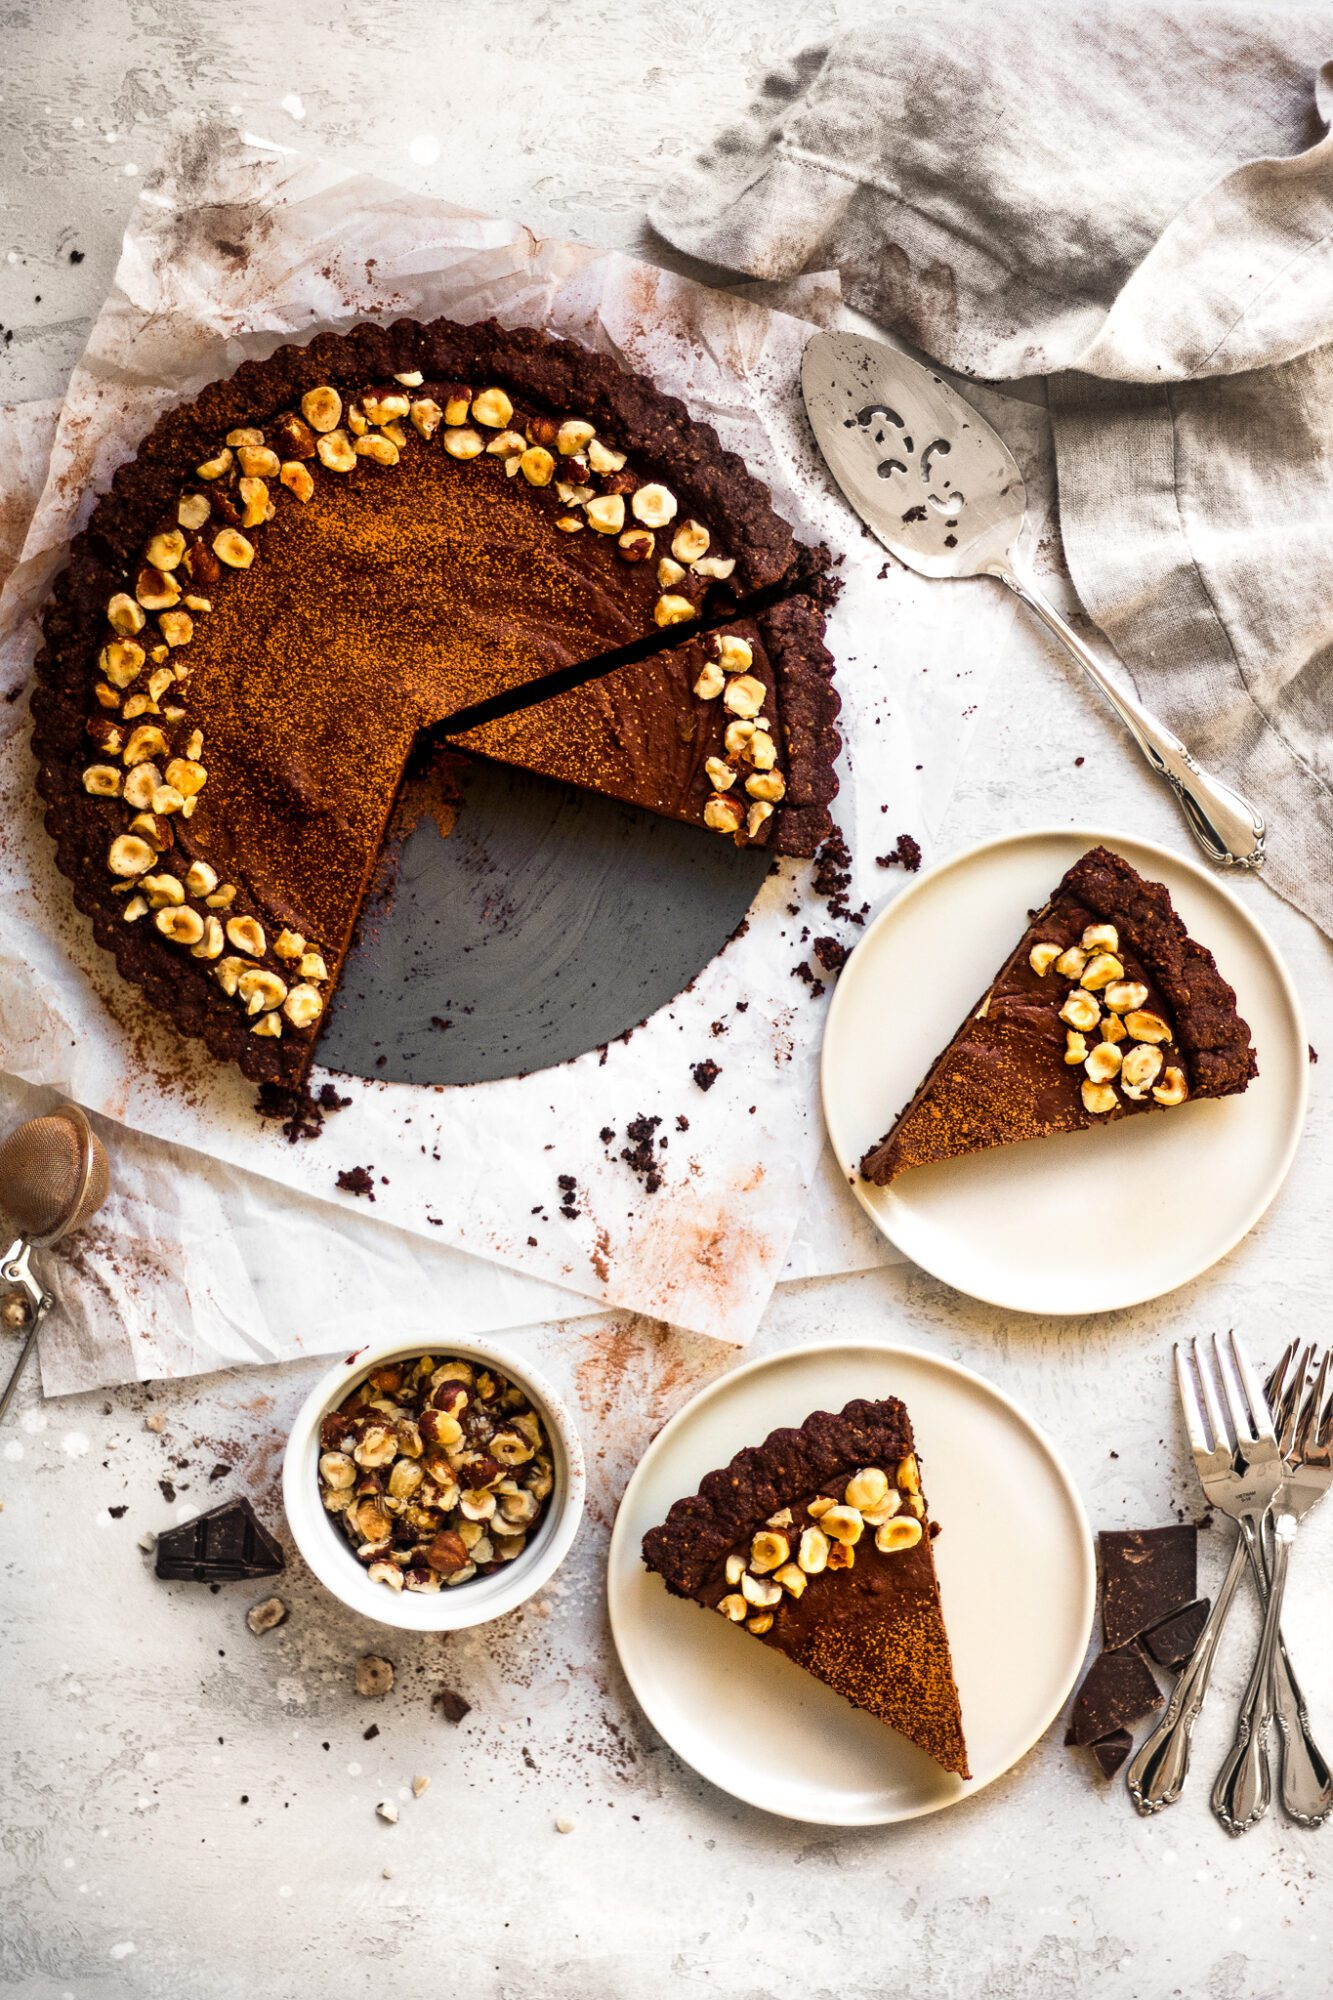 slices of chocolate tart on table